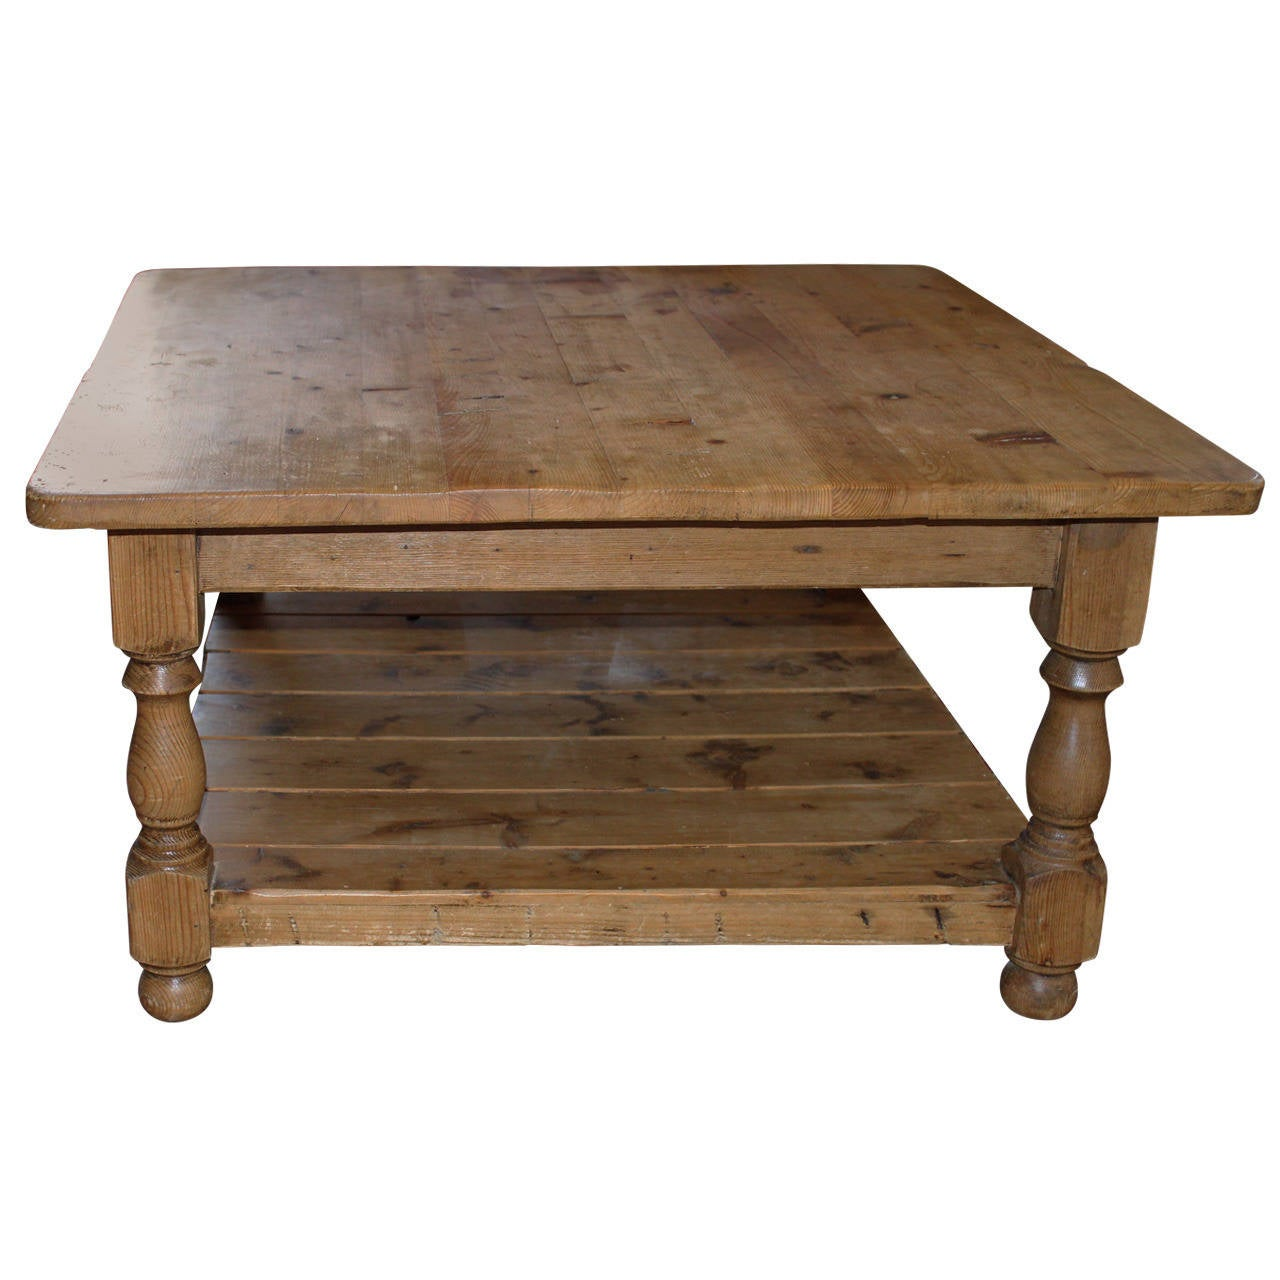 Vintage english pine coffee table at stdibs